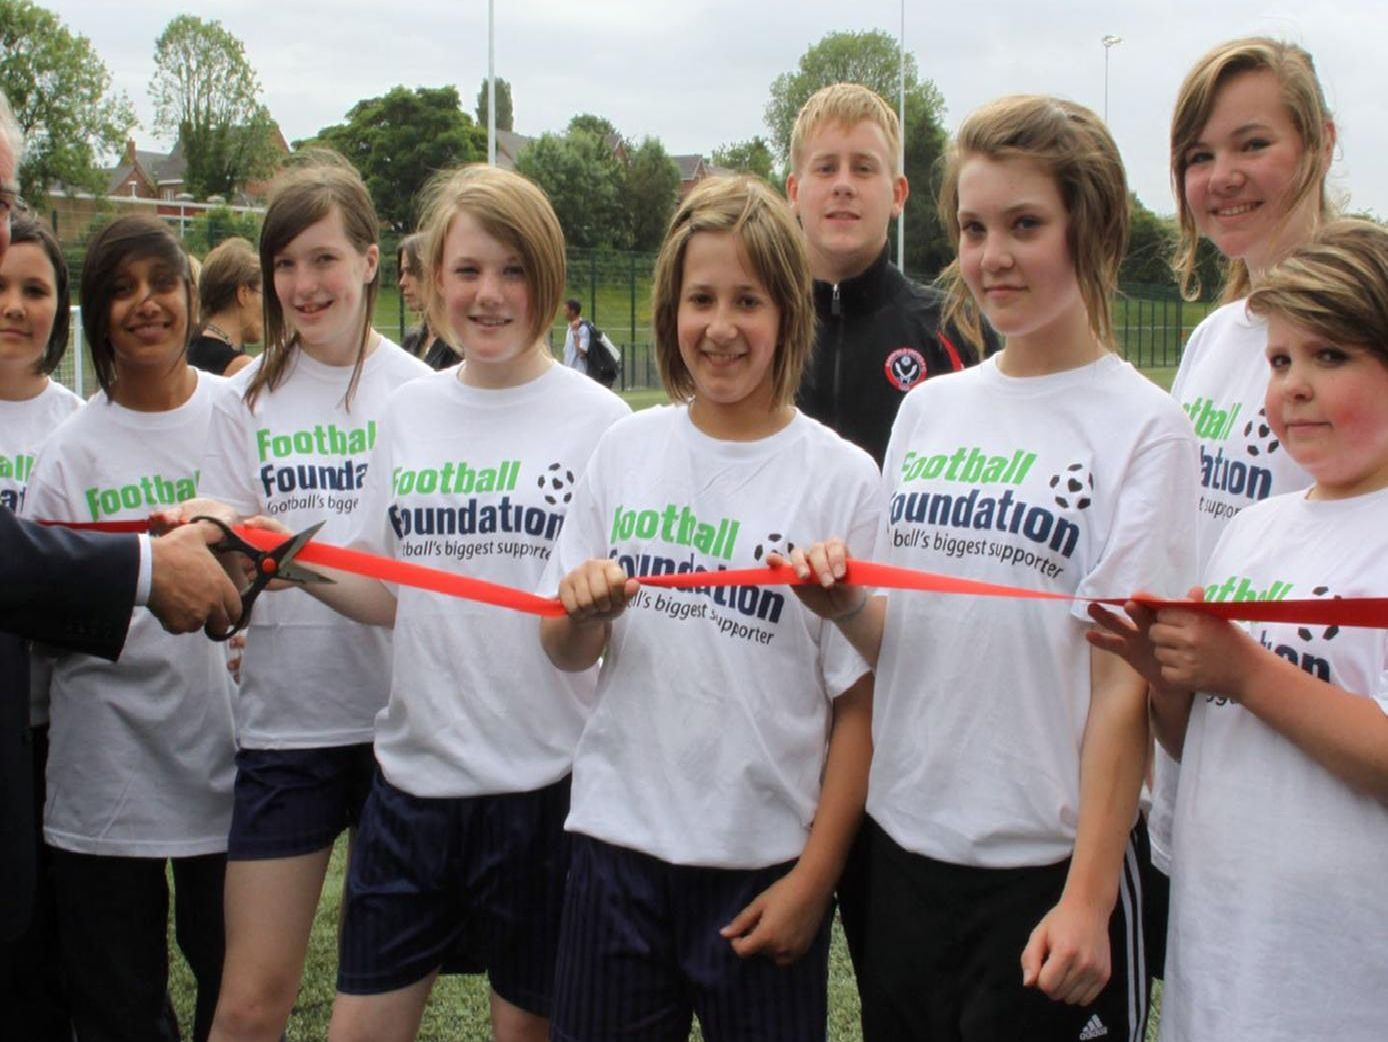 Opening of Brookfield School Sports Pitch. The Mayor of Chesterfield Keith Morgan performs the opening ceremony.